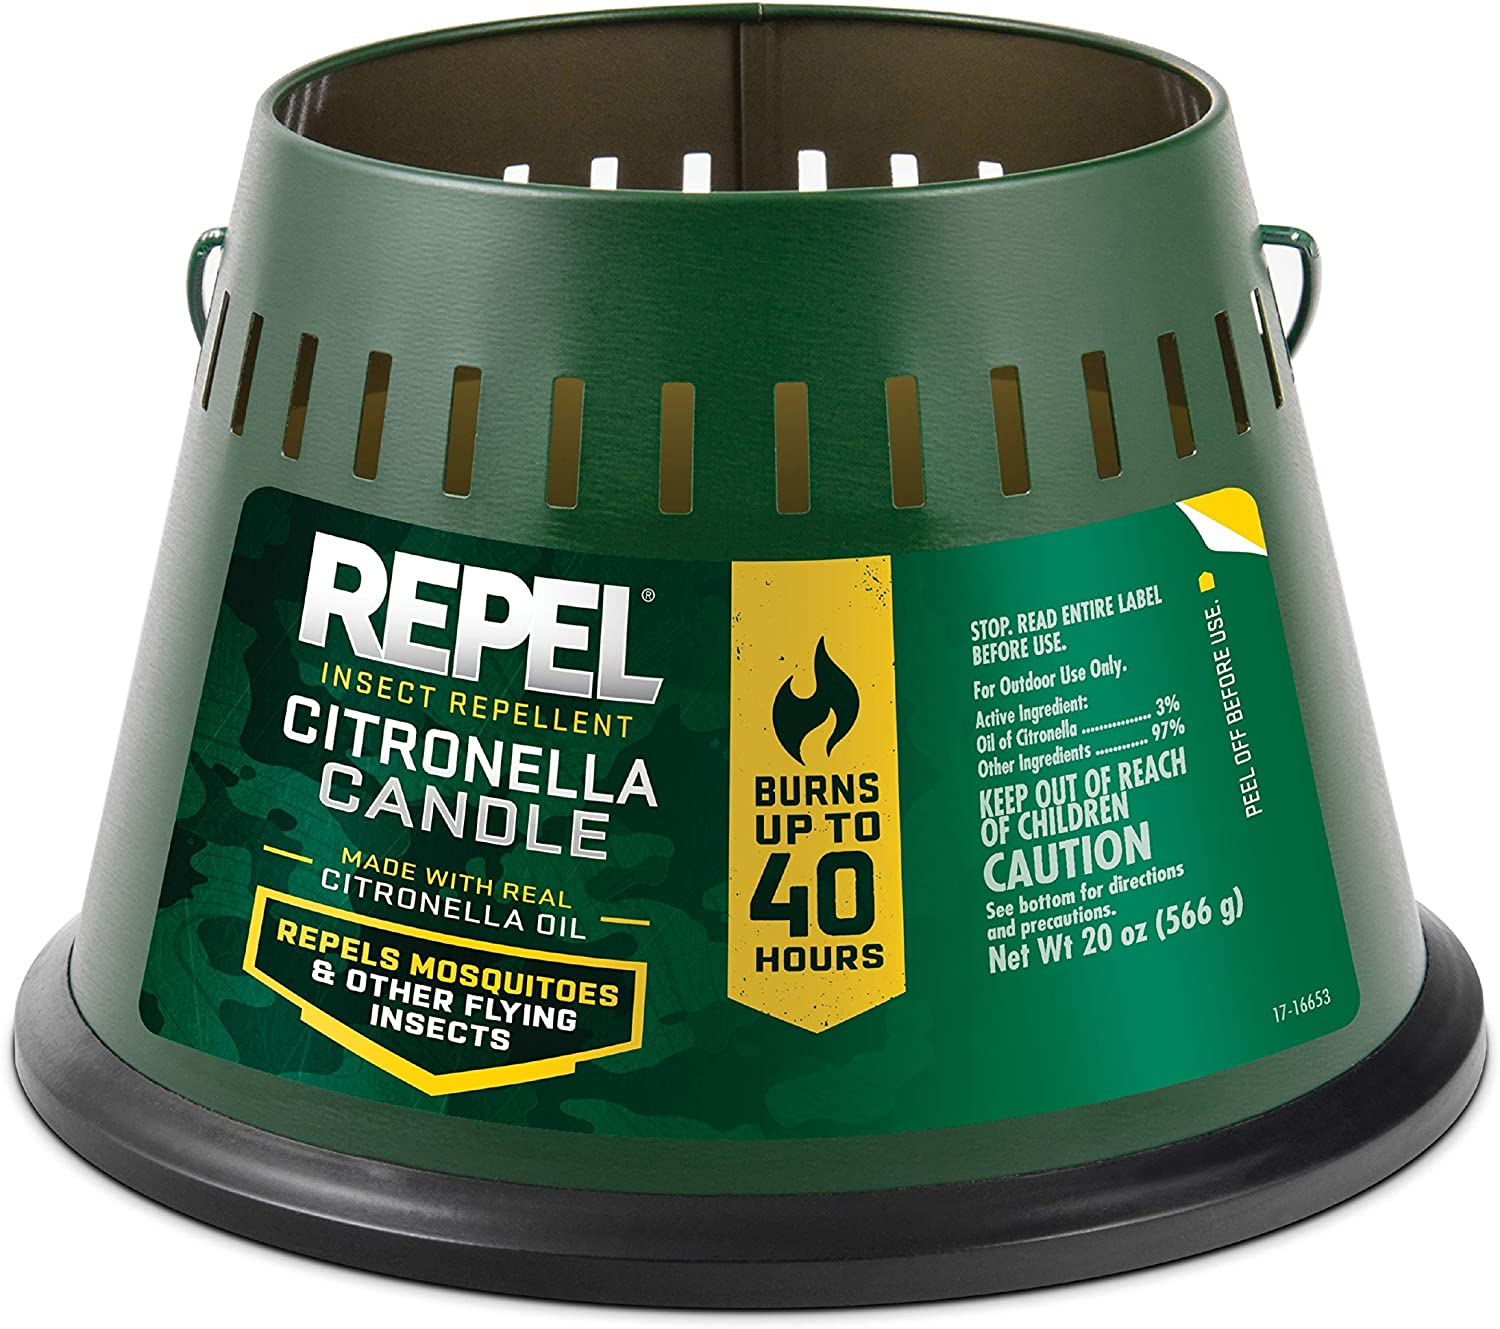 Best Budget Citronella Candle: Repel Insect Repellent Citronella Candle